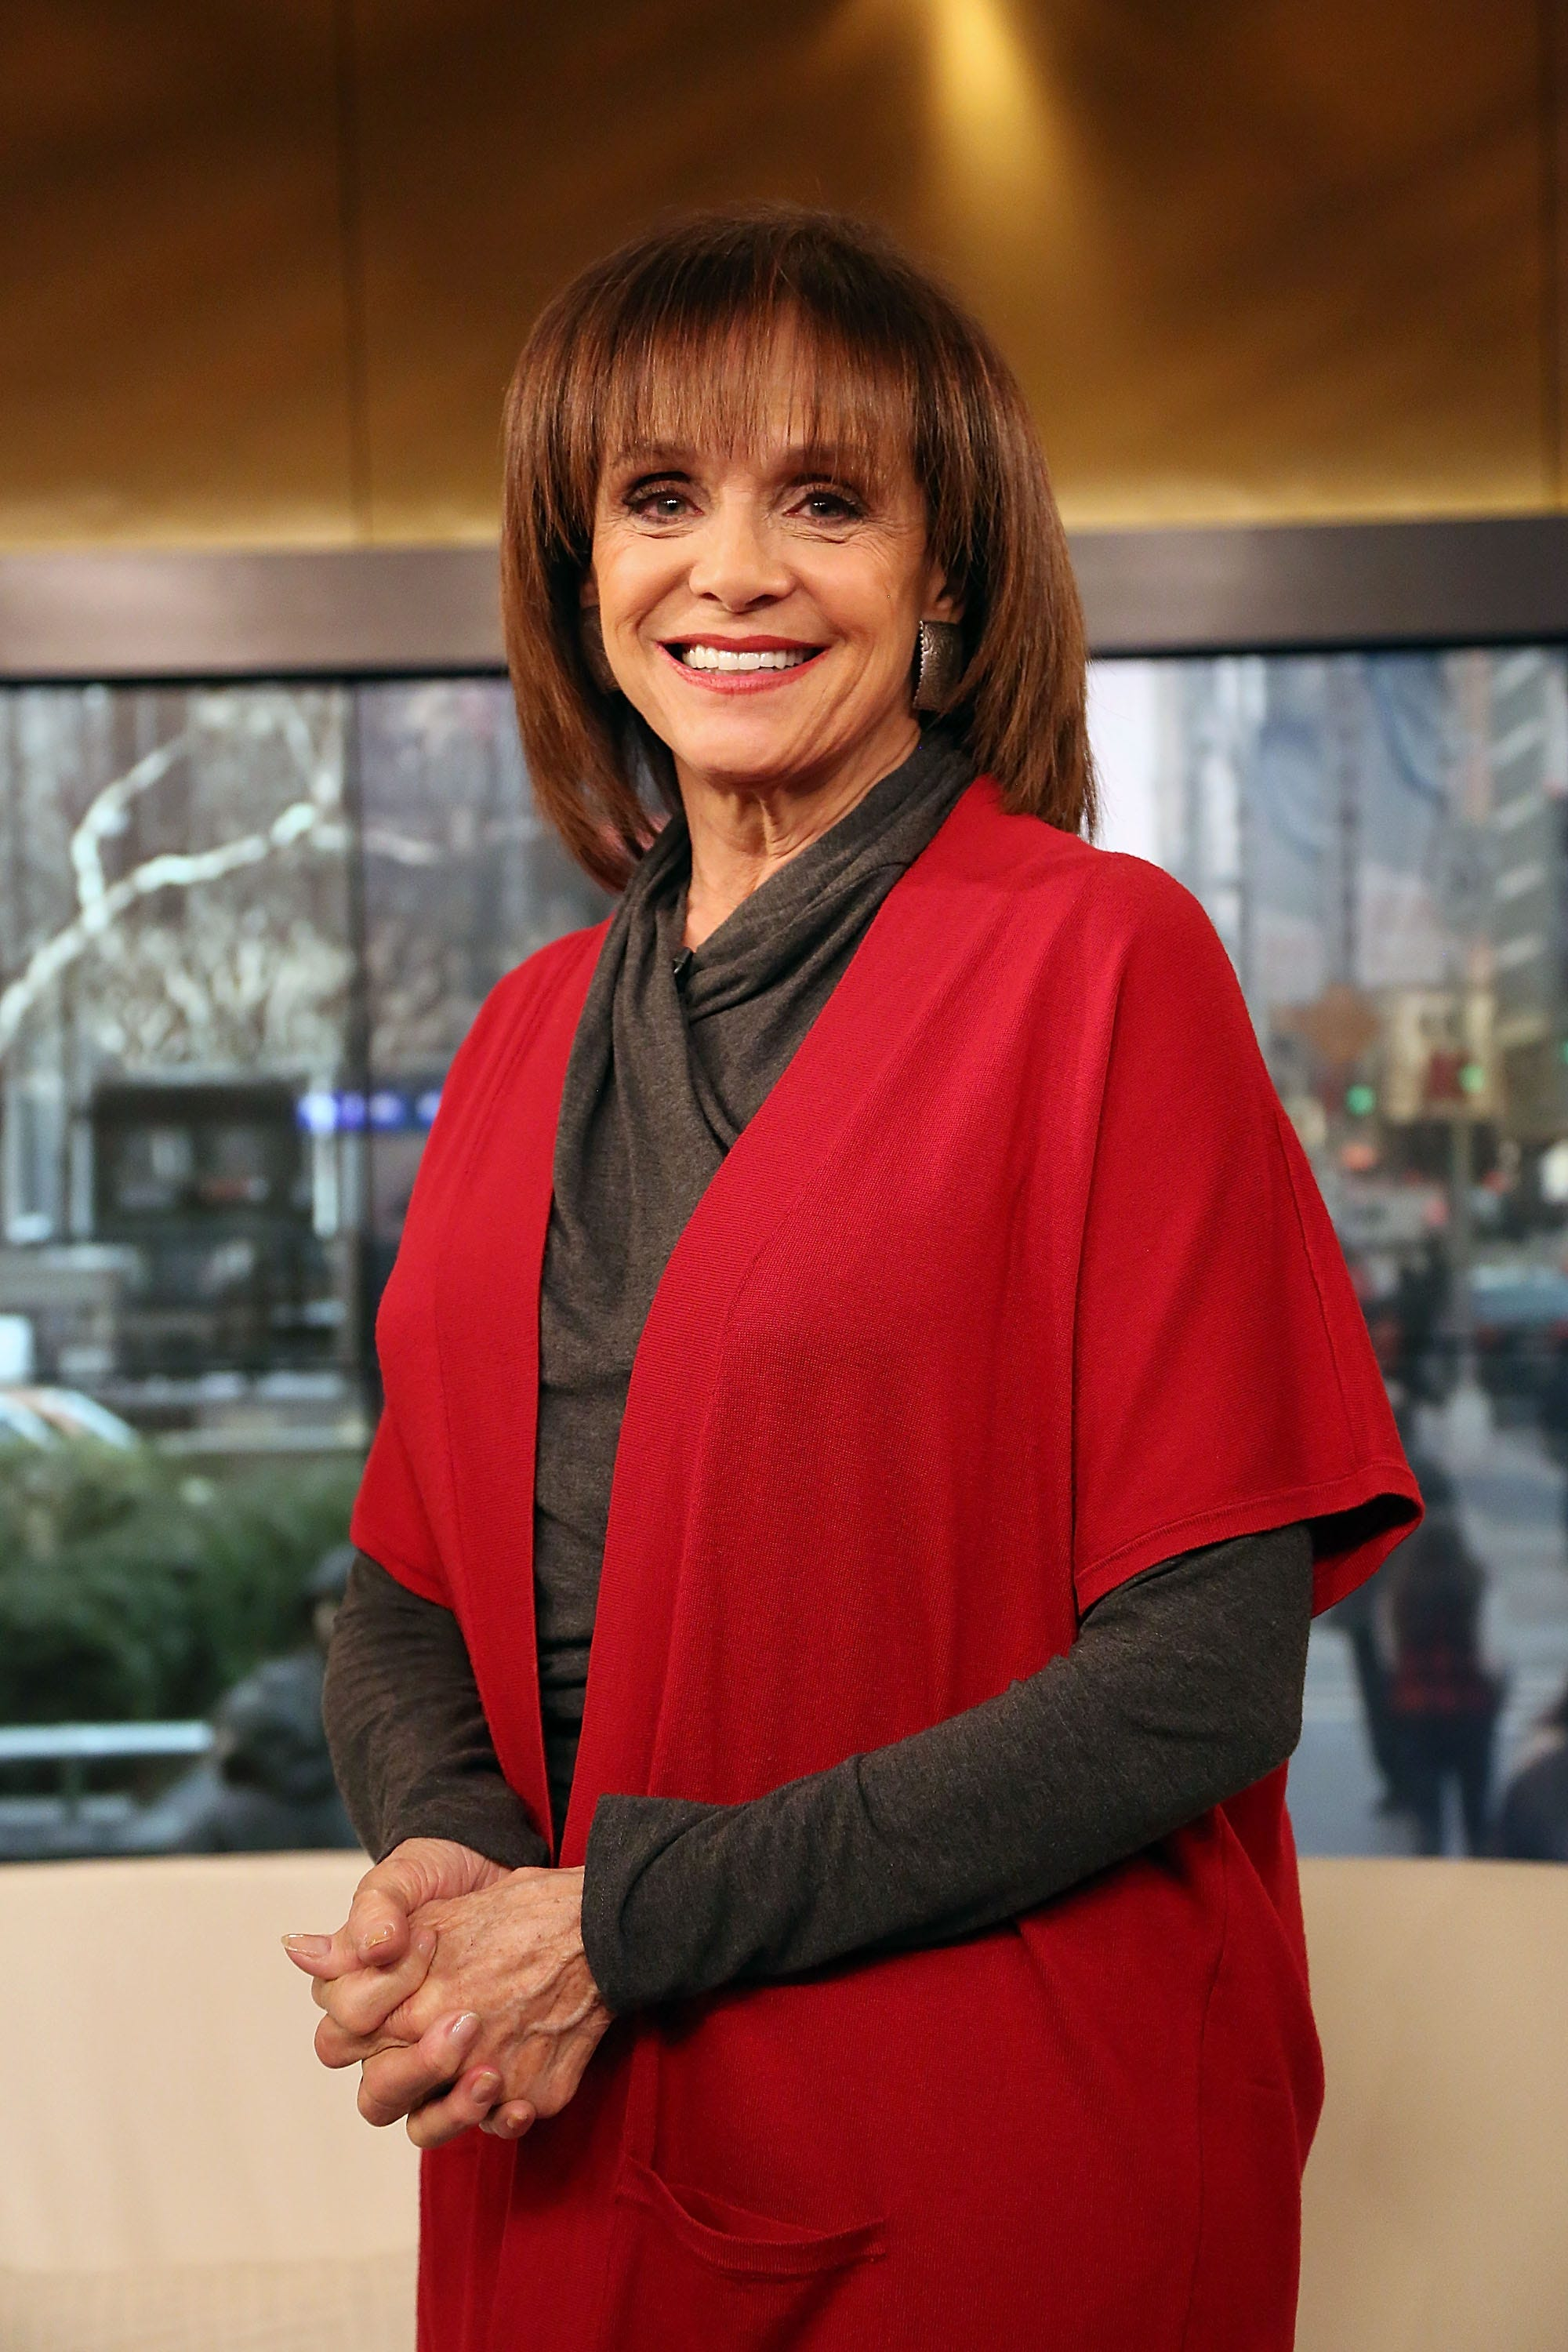 valerie harper health updatevalerie harper show, valerie harper, valerie harper cancer, valerie harper died, valerie harper update, valerie harper health, valerie harper news, valerie harper 2015, valerie harper death, valerie harper brain cancer, valerie harper net worth, valerie harper lung cancer, valerie harper today, valerie harper 2016, valerie harper age, valerie harper imdb, valerie harper health update, valerie harper 2014, valerie harper latest news, valerie harper coma